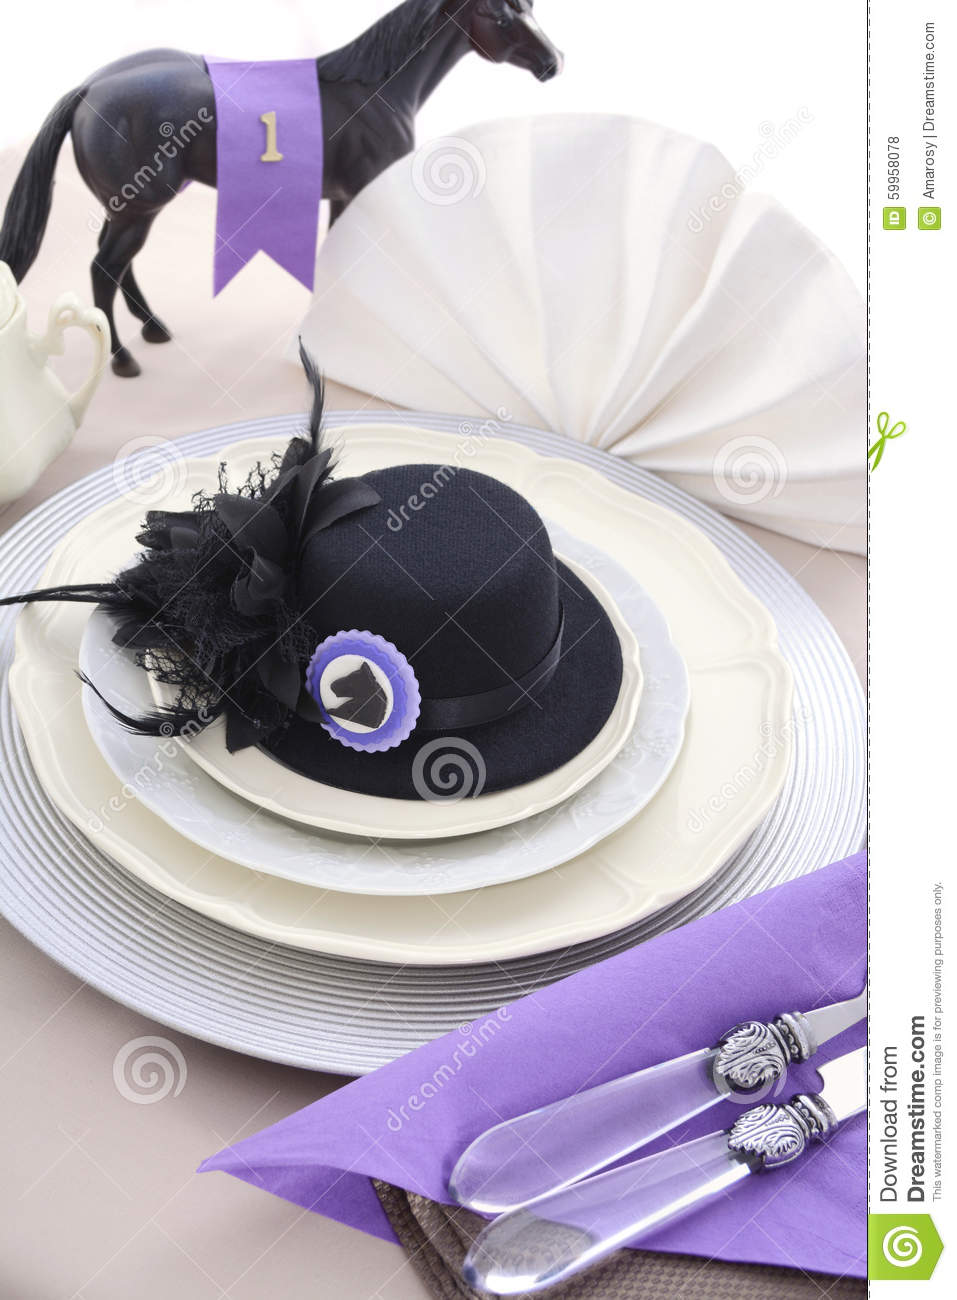 Horse Race Day Ladies Luncheon Table Setting Stock Photo